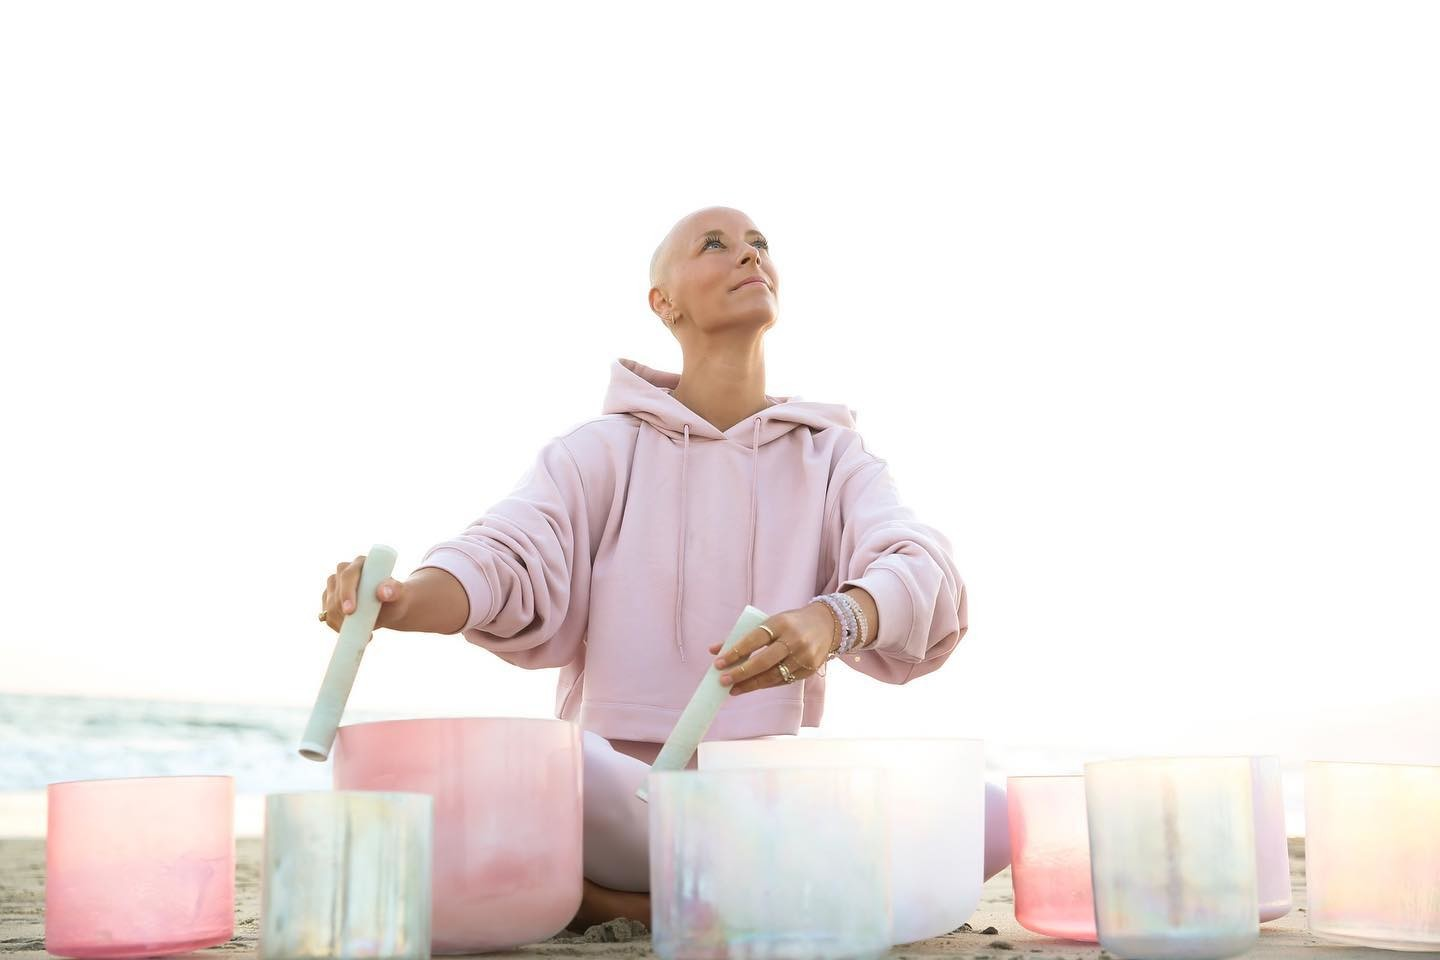 @thecoppervessel performing a sound bath practice wearing a cropped pink Alo hoodie while on the beach.